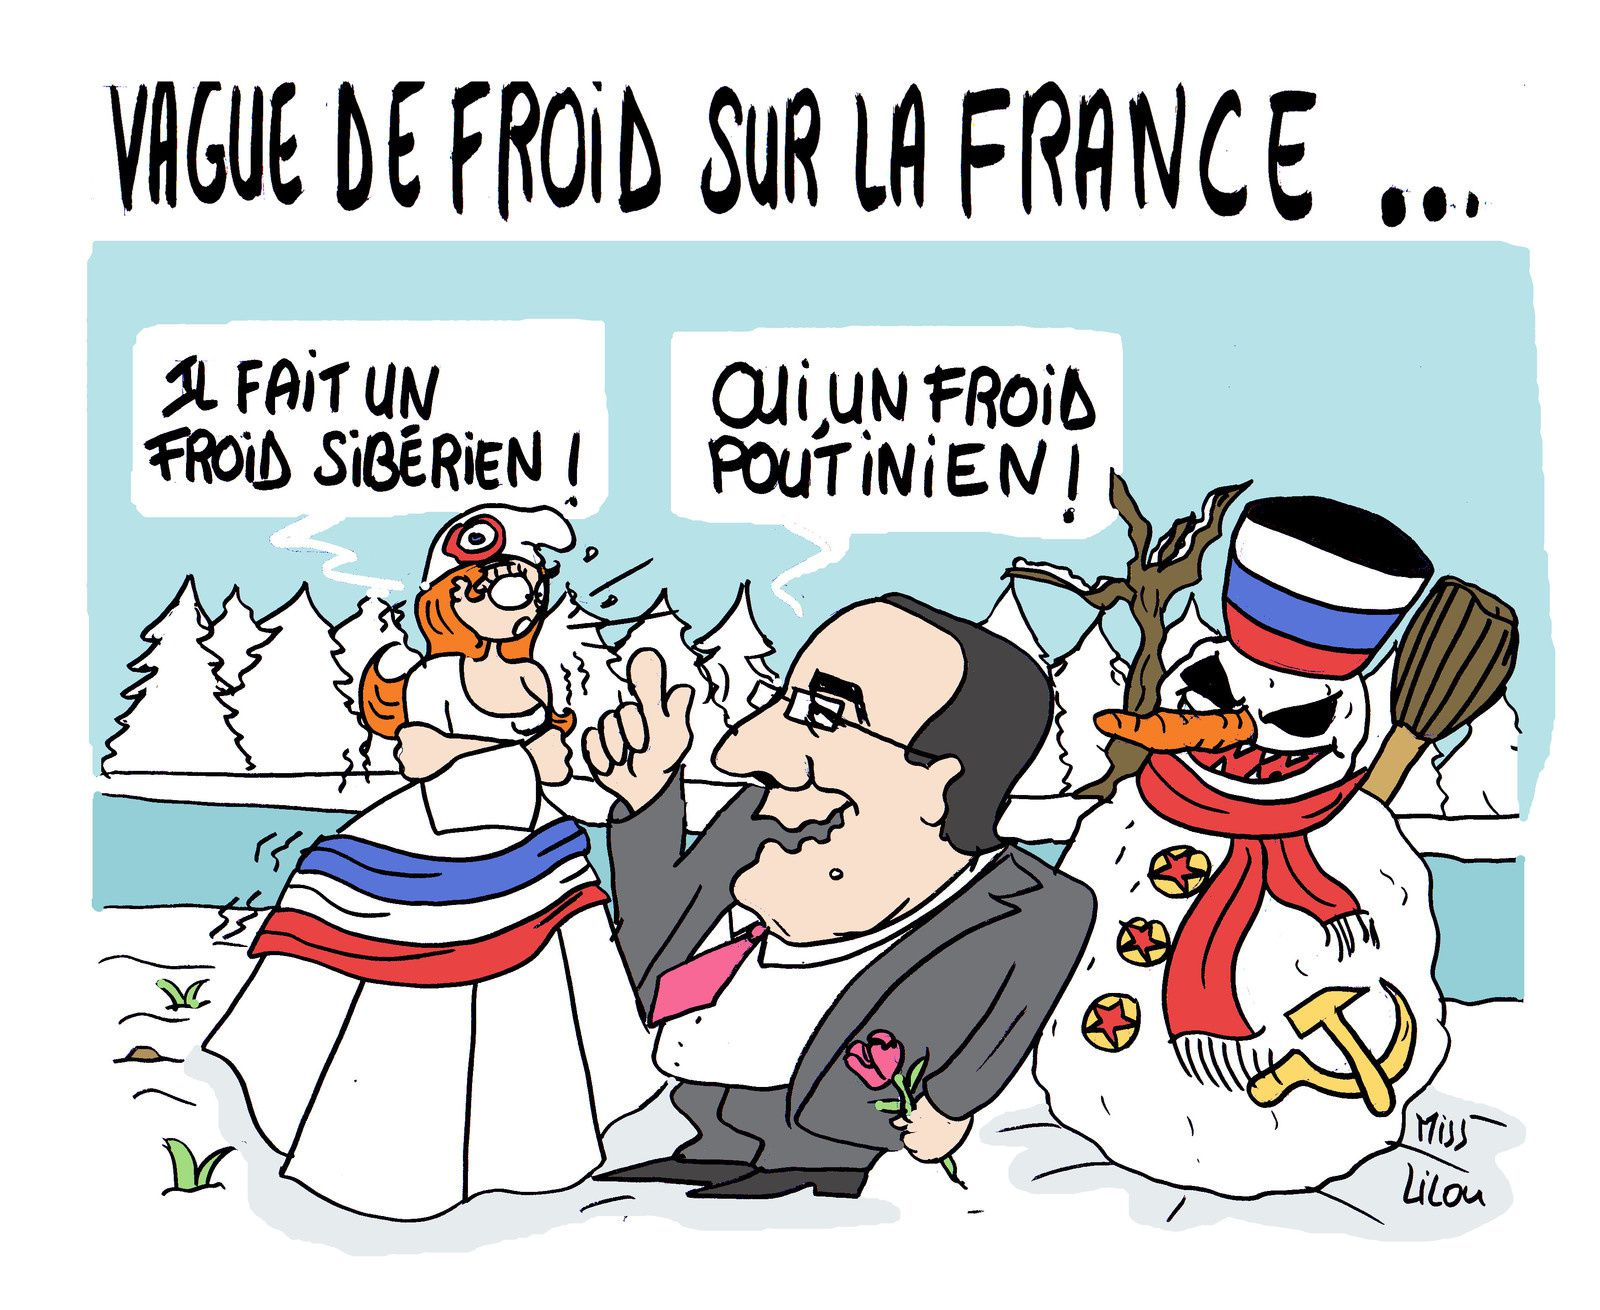 Vague de froid sur la France...